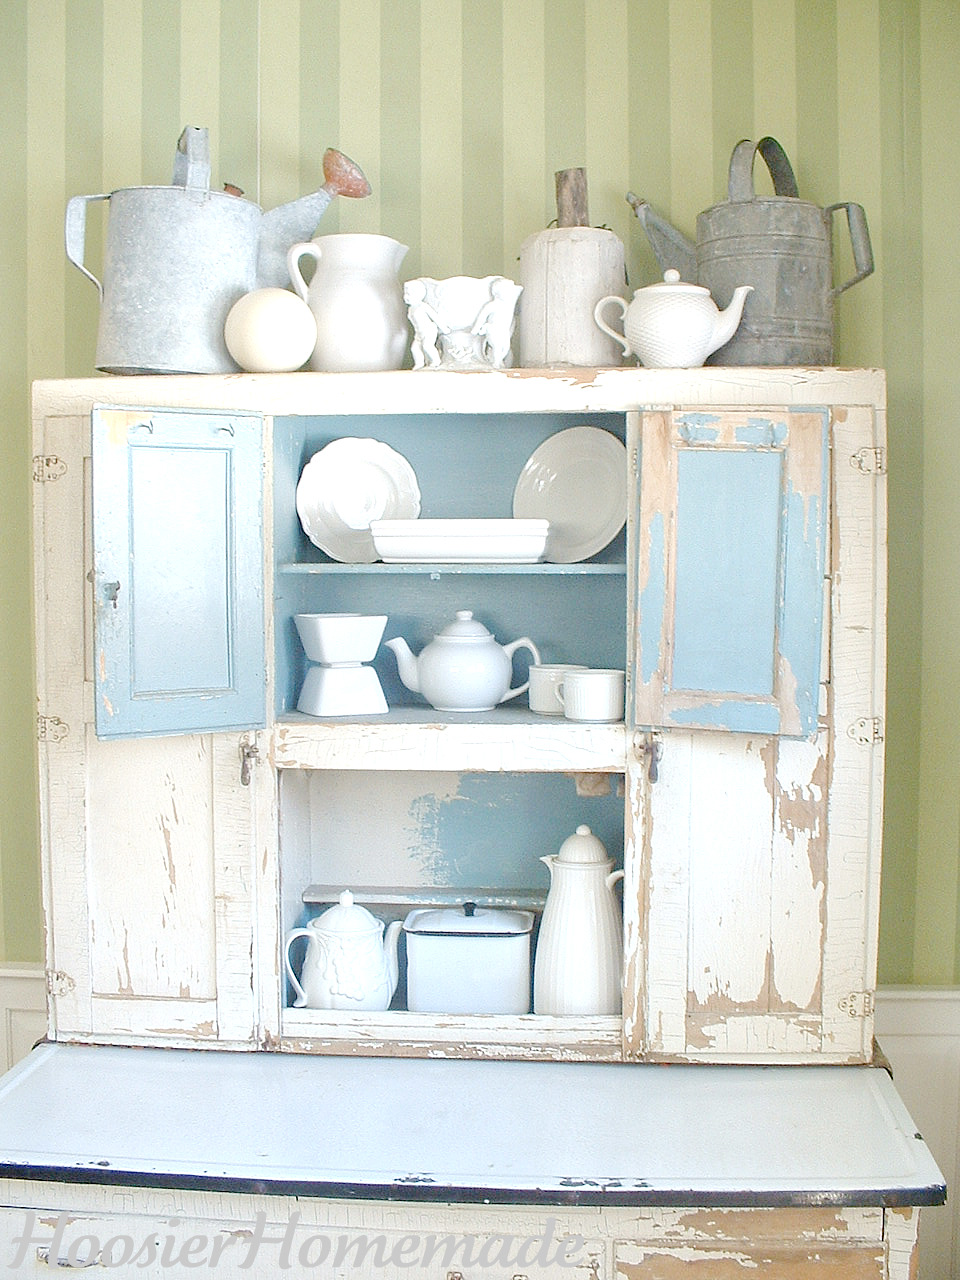 A lovely Hoosier kitchen cabinet | Auction Finds